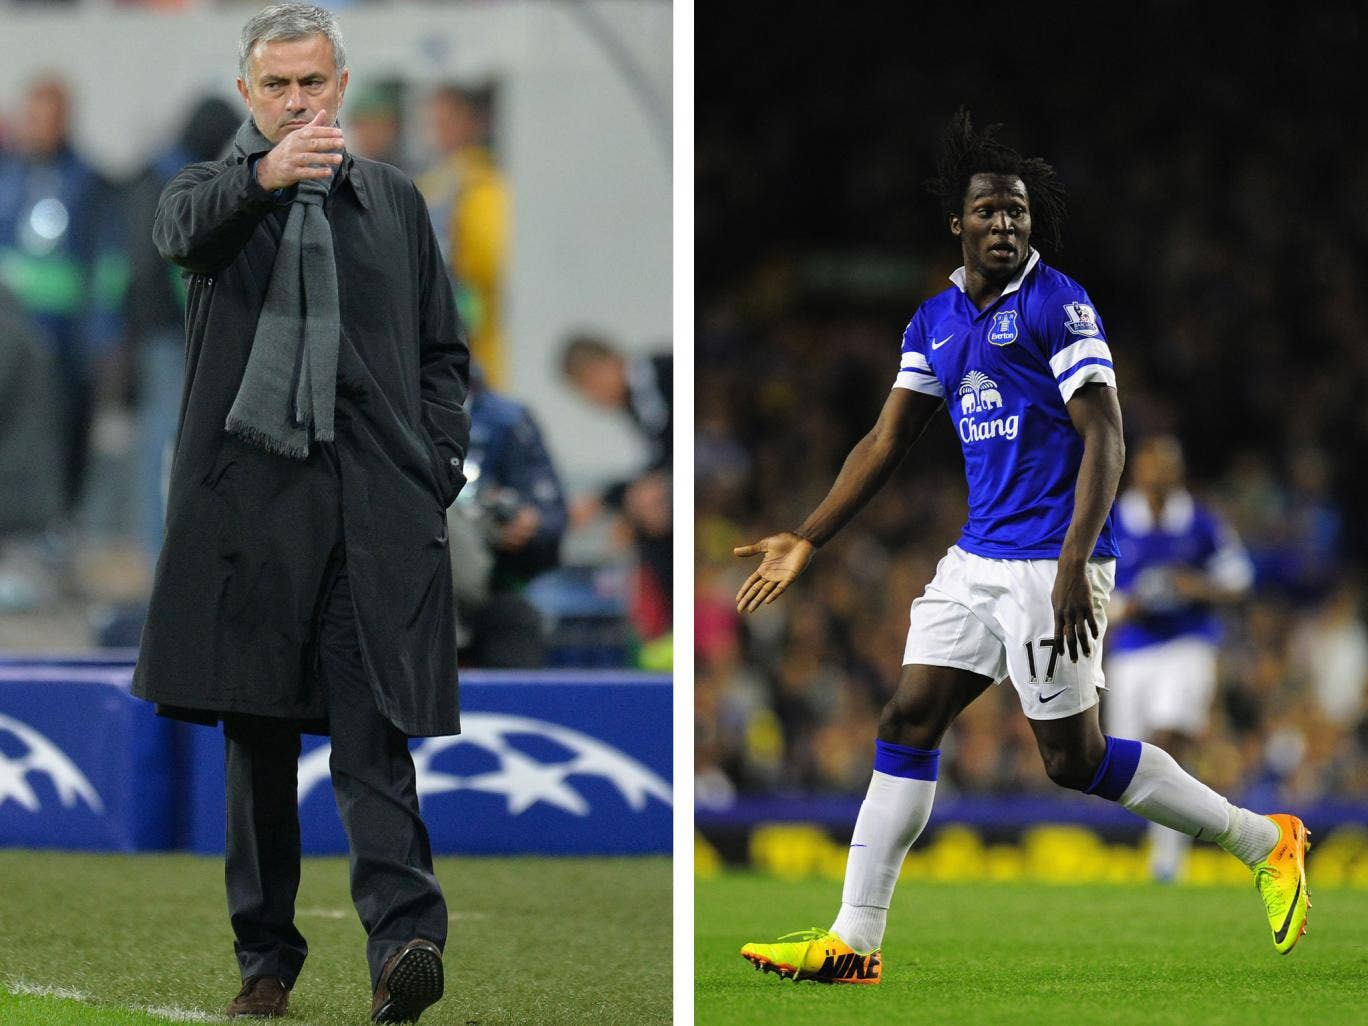 Jose Mourinho has claimed that it is one thing to play well for Everton, and it's another to play well for Chelsea, in response to Romelu Lukaku's loan to Everton